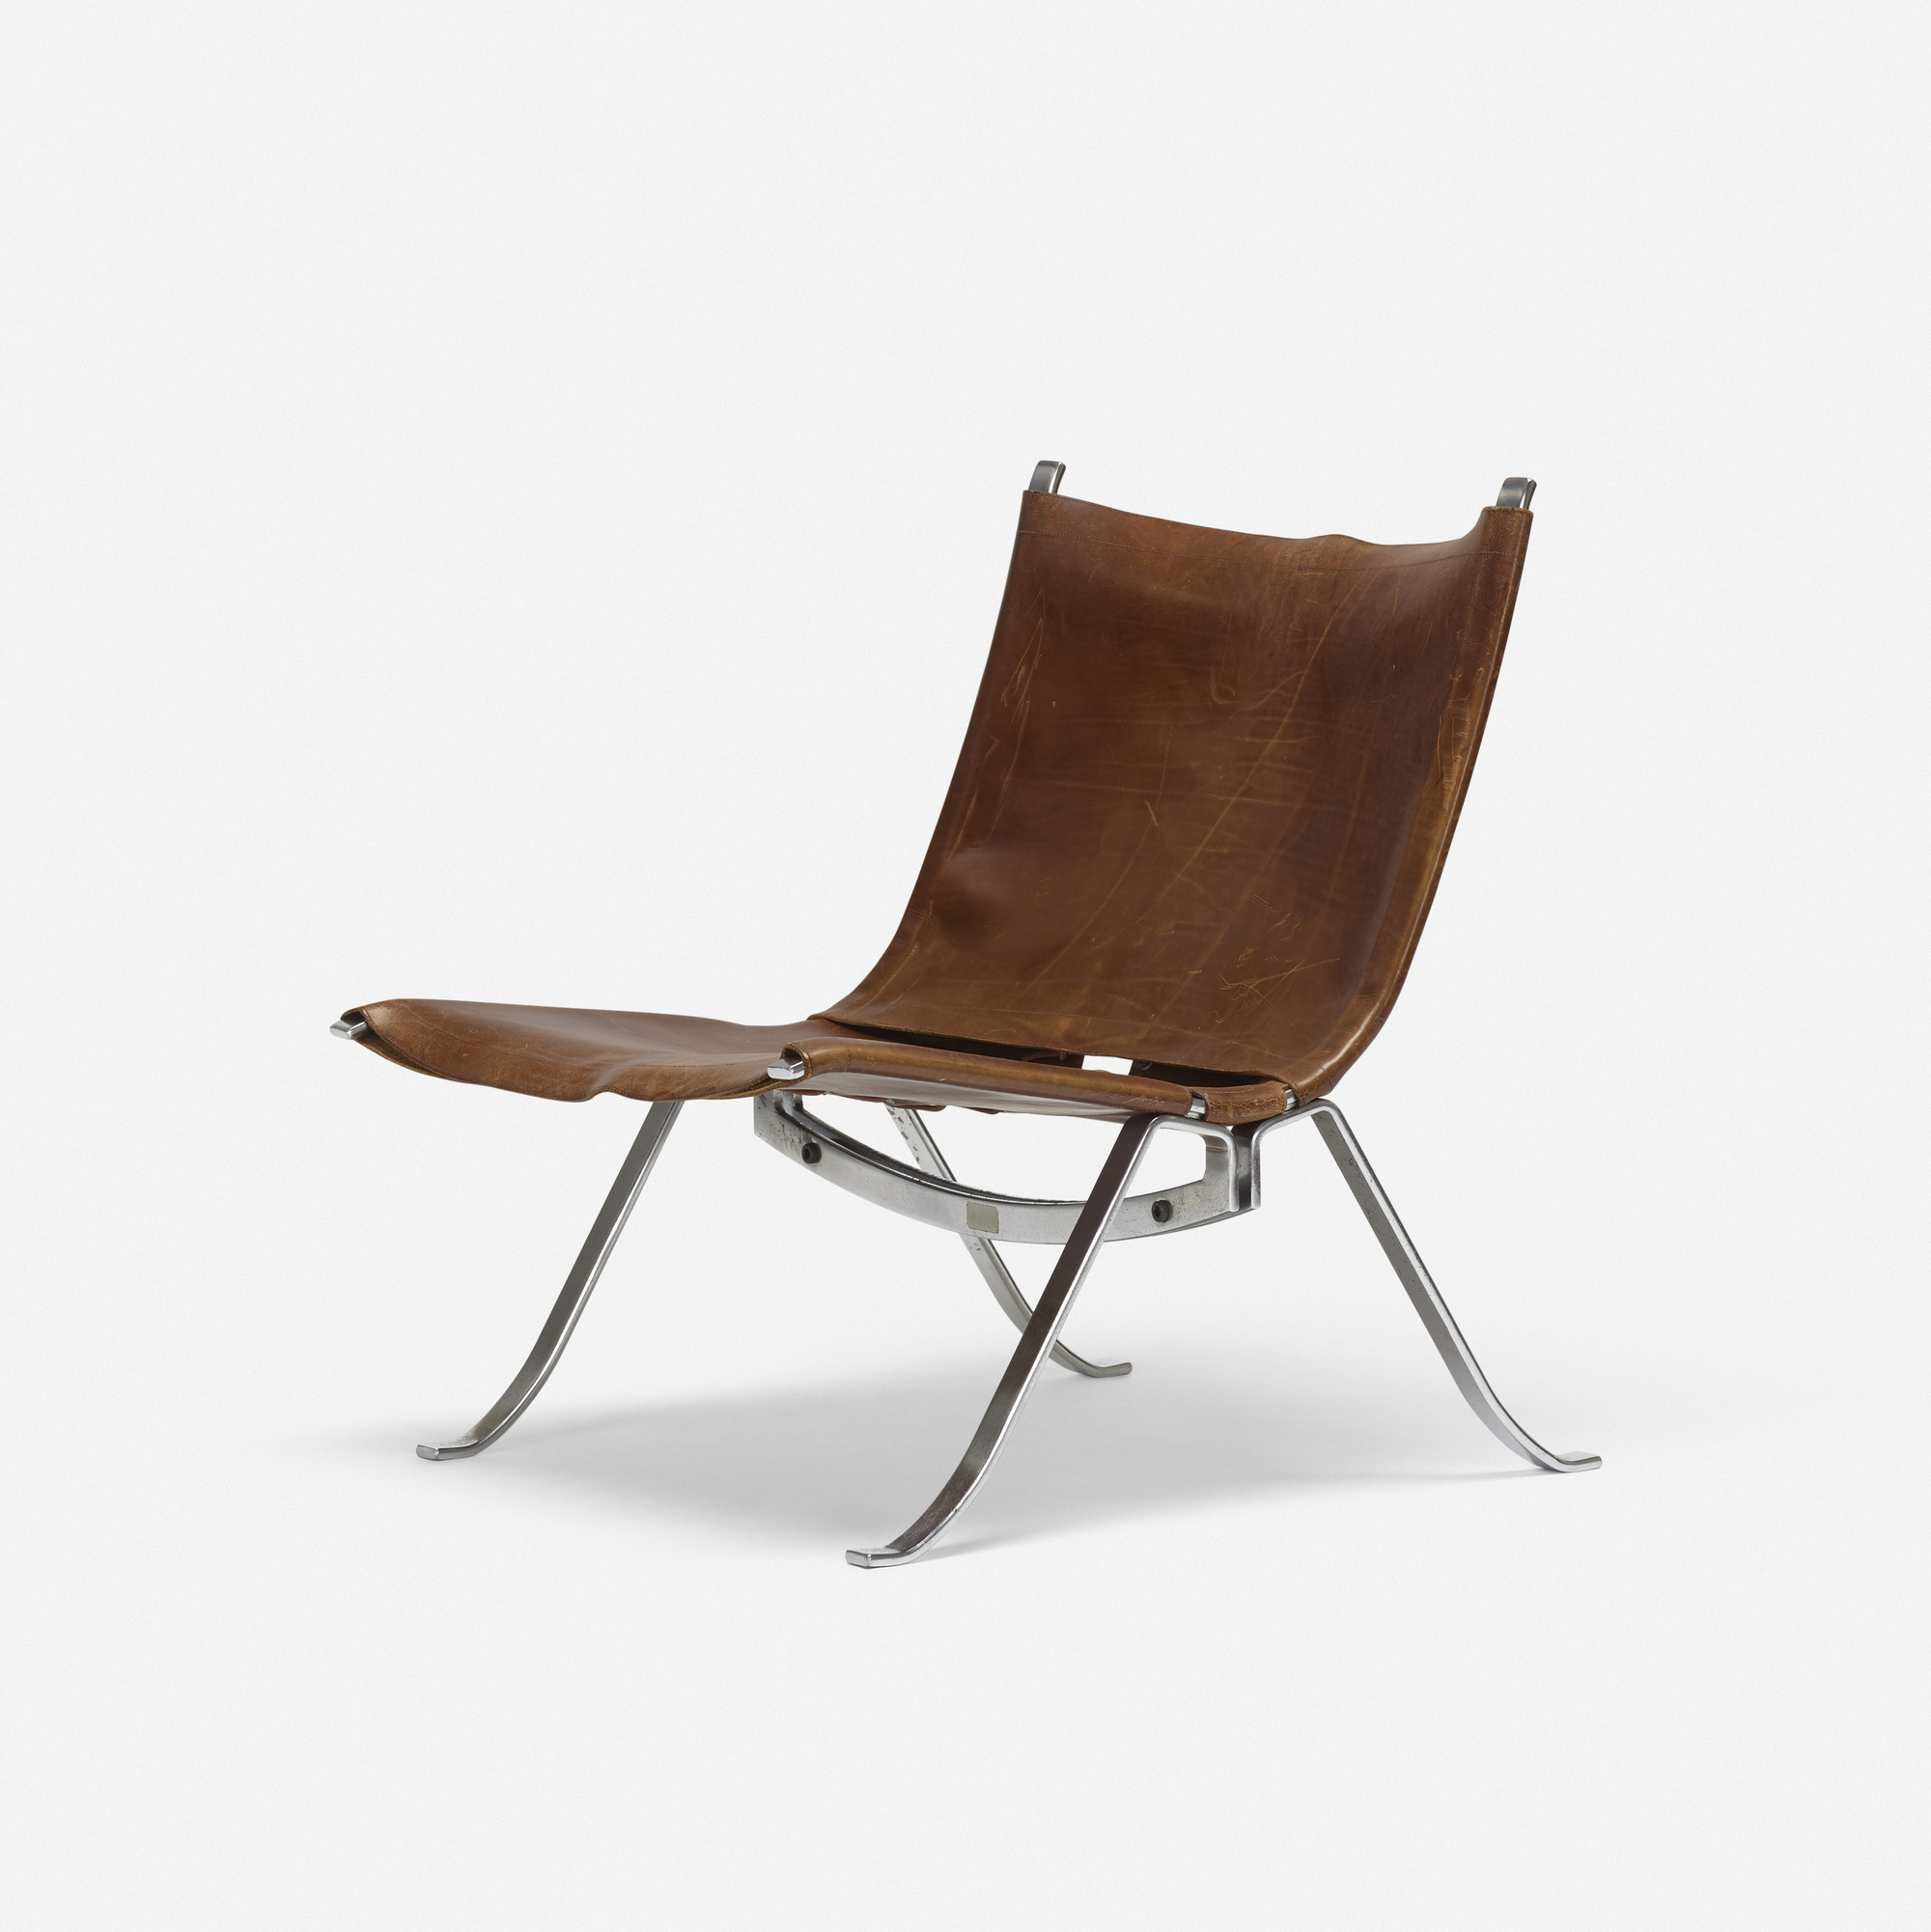 350: Preben Fabricius and Jorgen Kastholm / lounge chair (1 of 4)